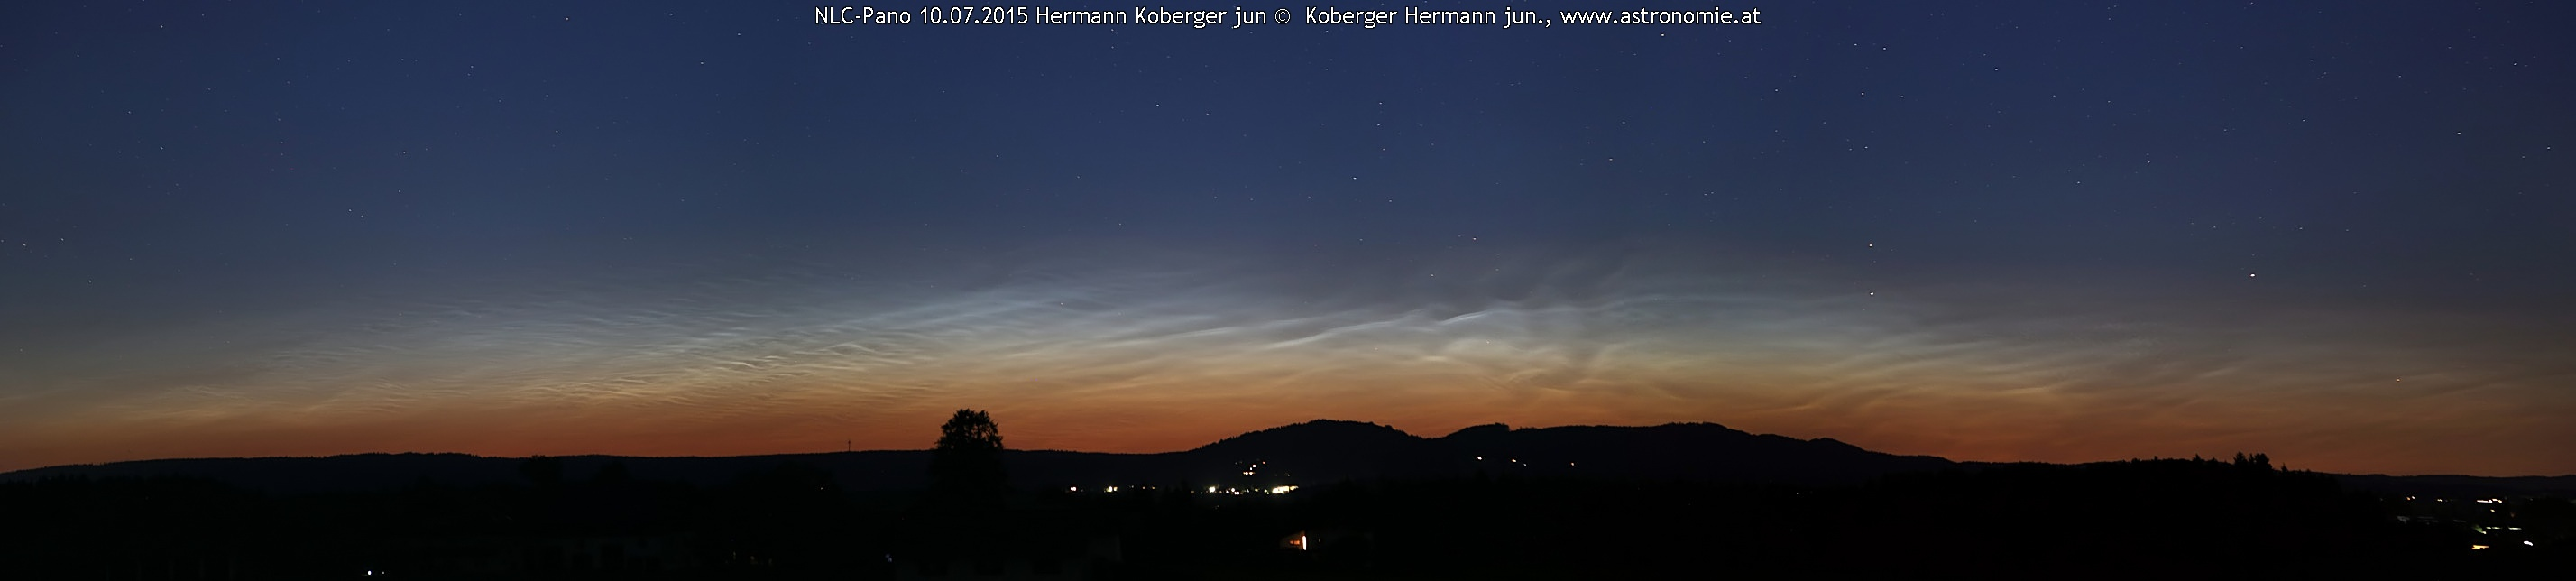 -NLC10072015Pano © image-owner(s)